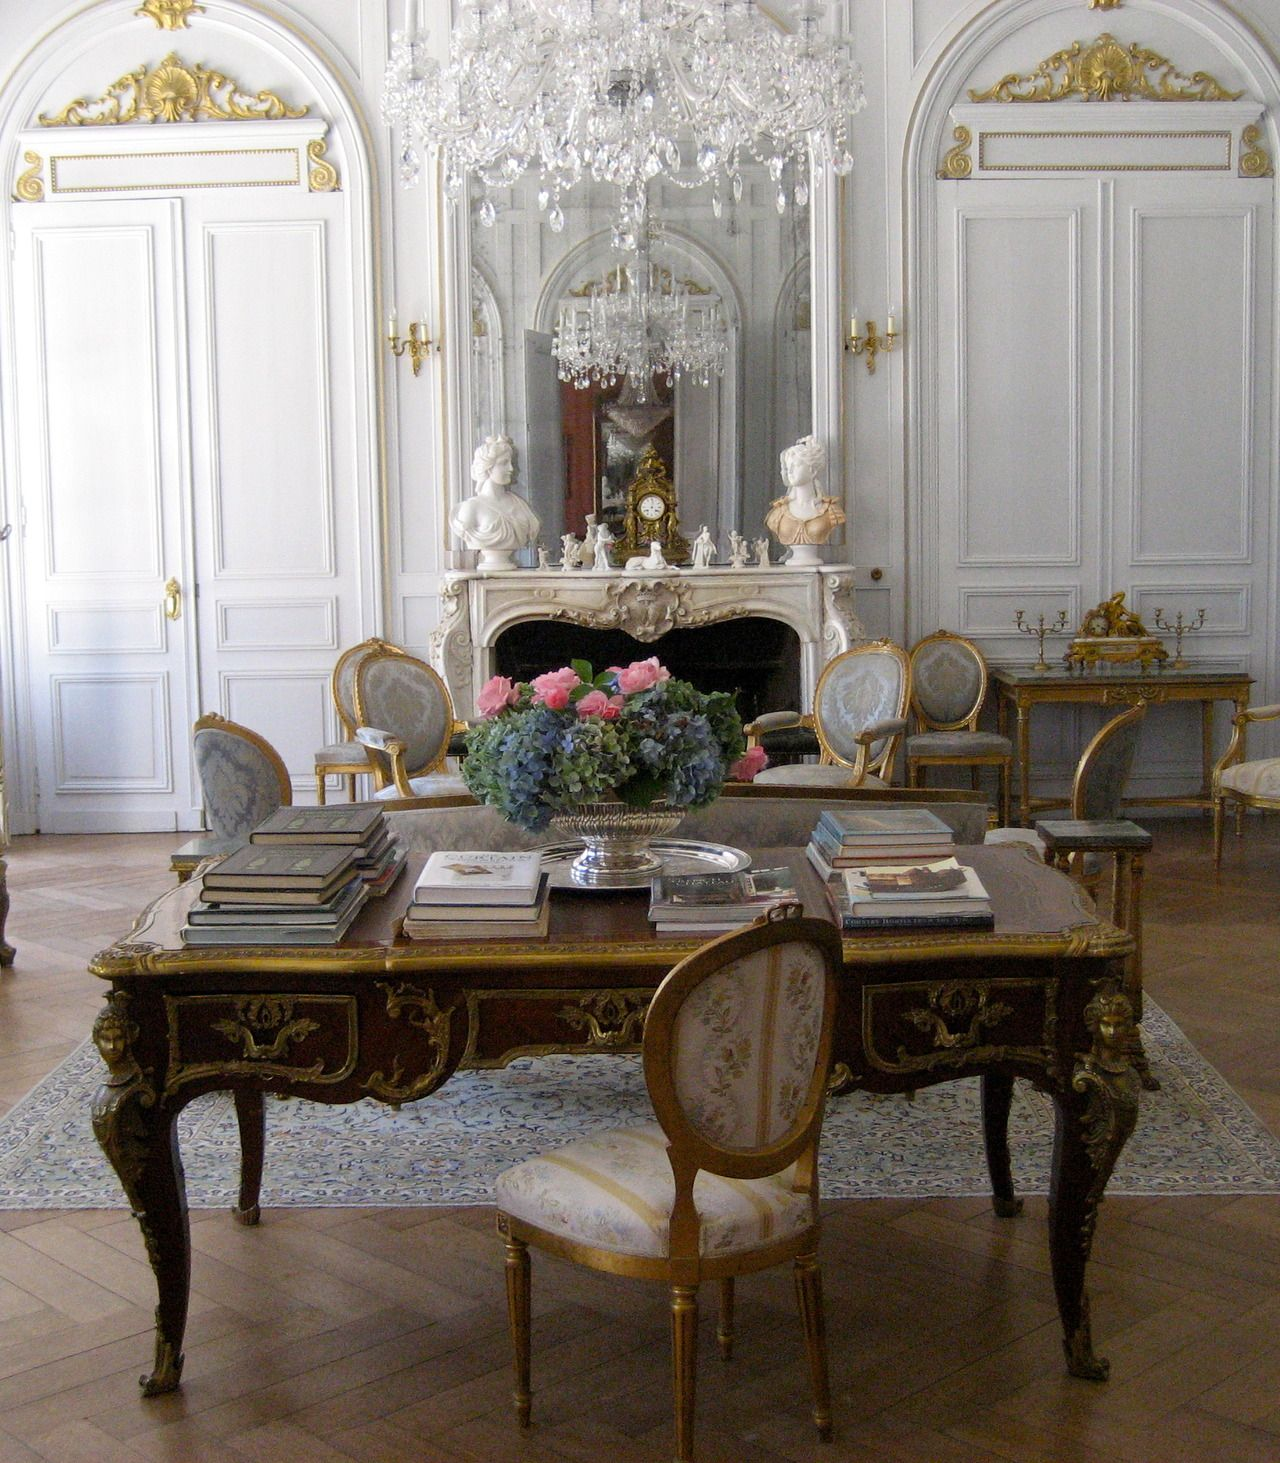 Beautiful French Office With Golds Silvers Warm Woods Century Cau Set In The Dordogne Area Of France My Friend S Apartment Paris Is Similar To